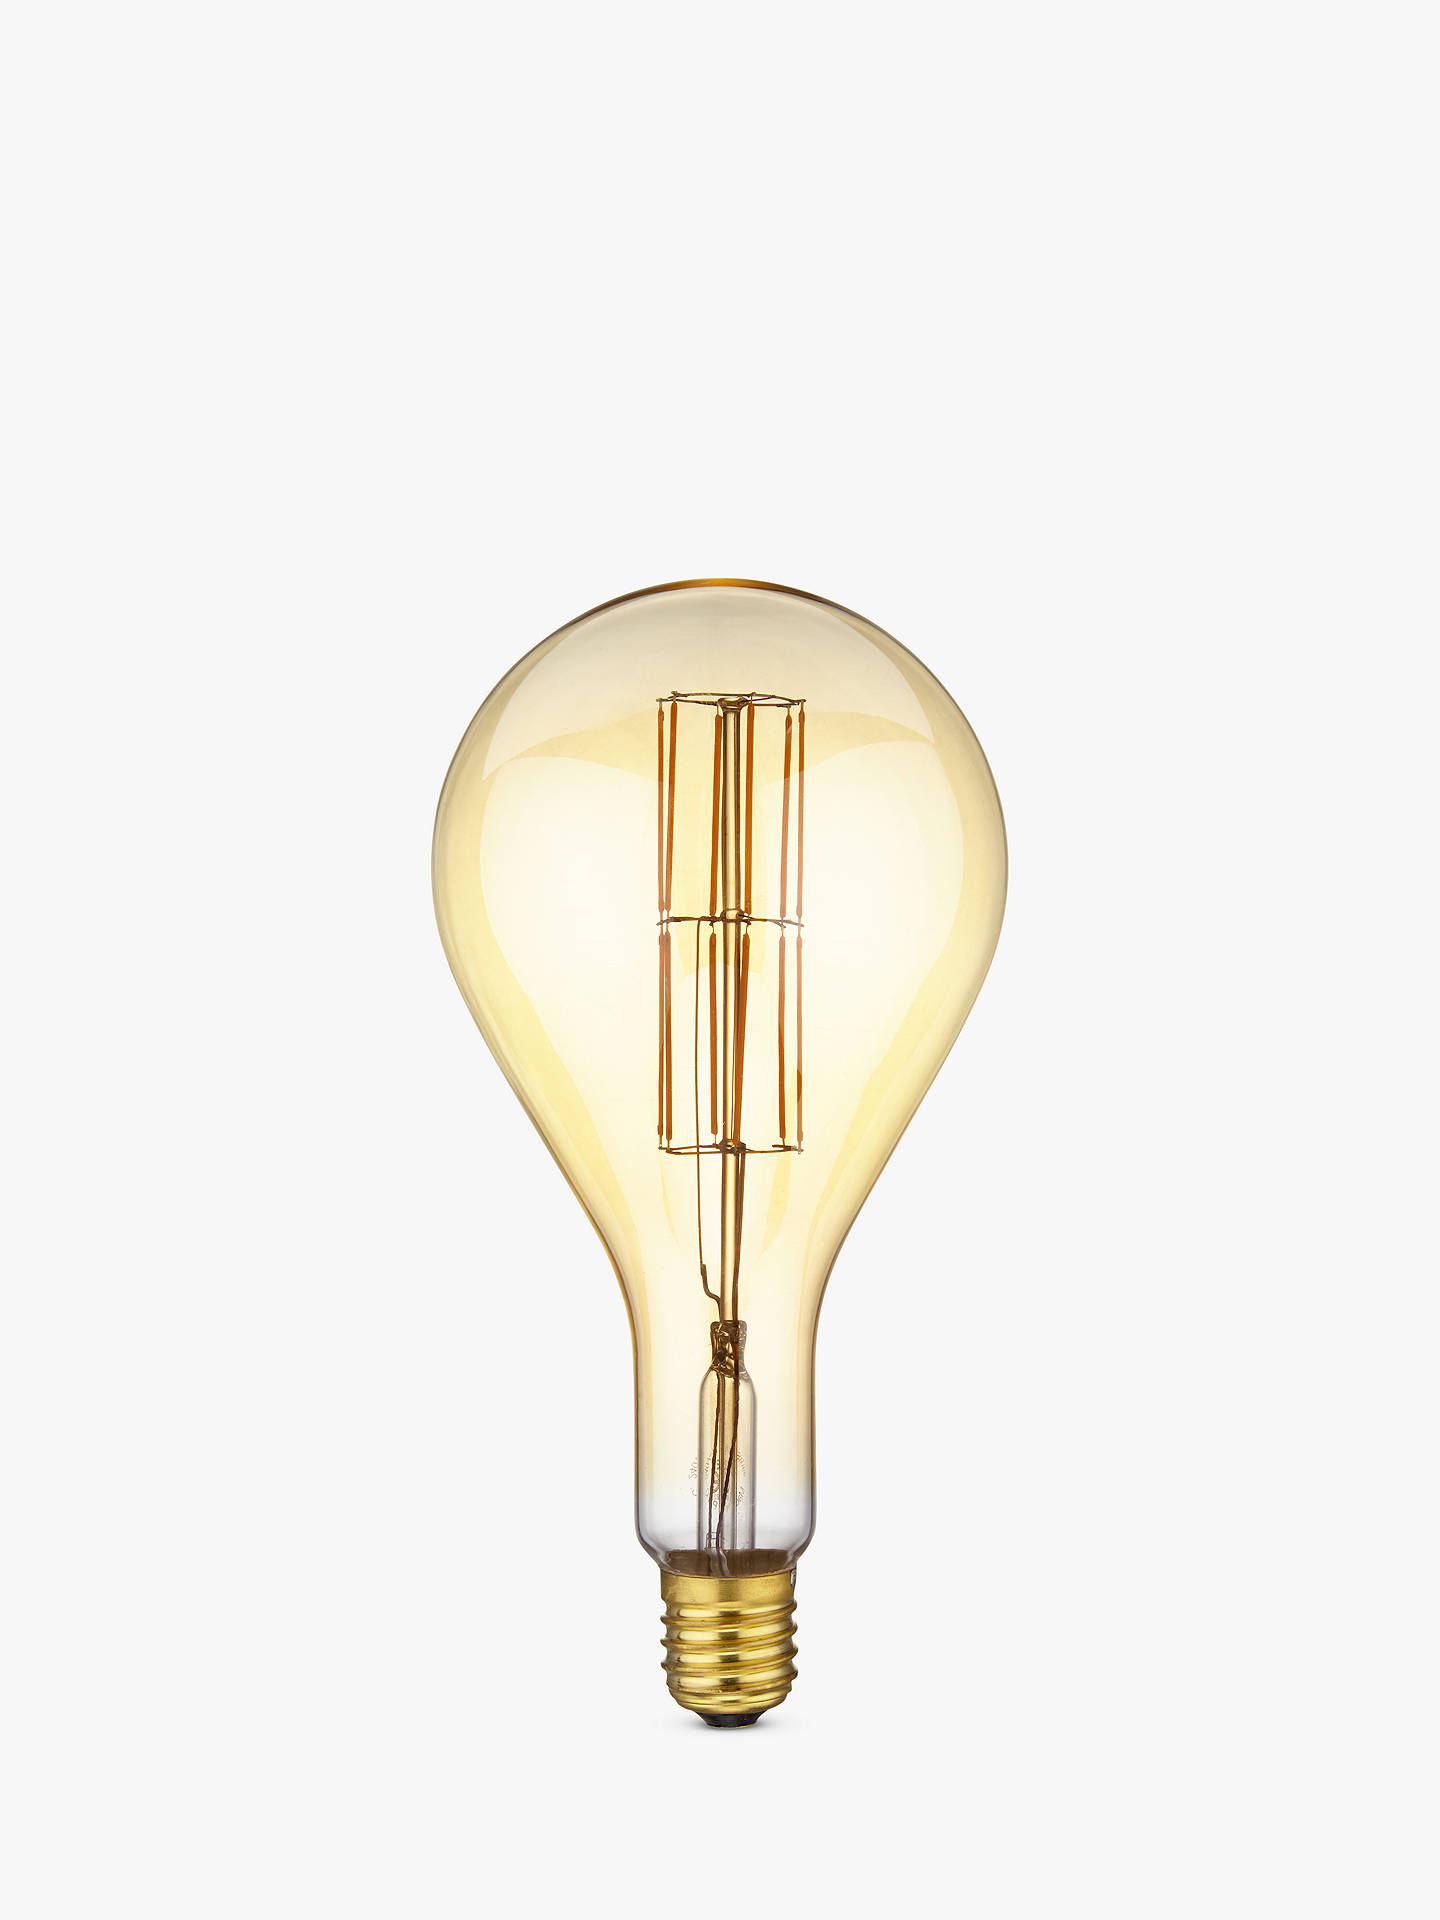 BuyCalex XXL E40 Dimmable Filament Splash Bulb, Gold Online at johnlewis.com